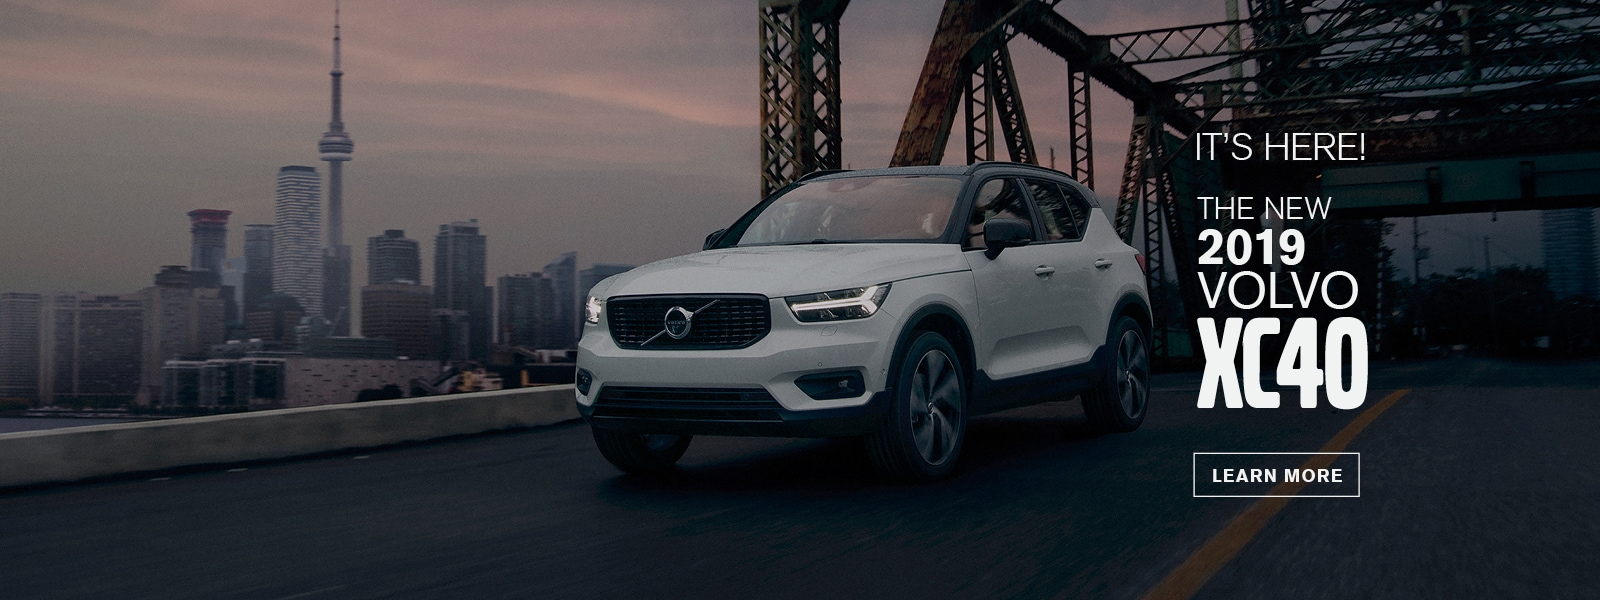 Volvo Cars Brentwood | St. Louis, MO | New & Used Volvo Dealership